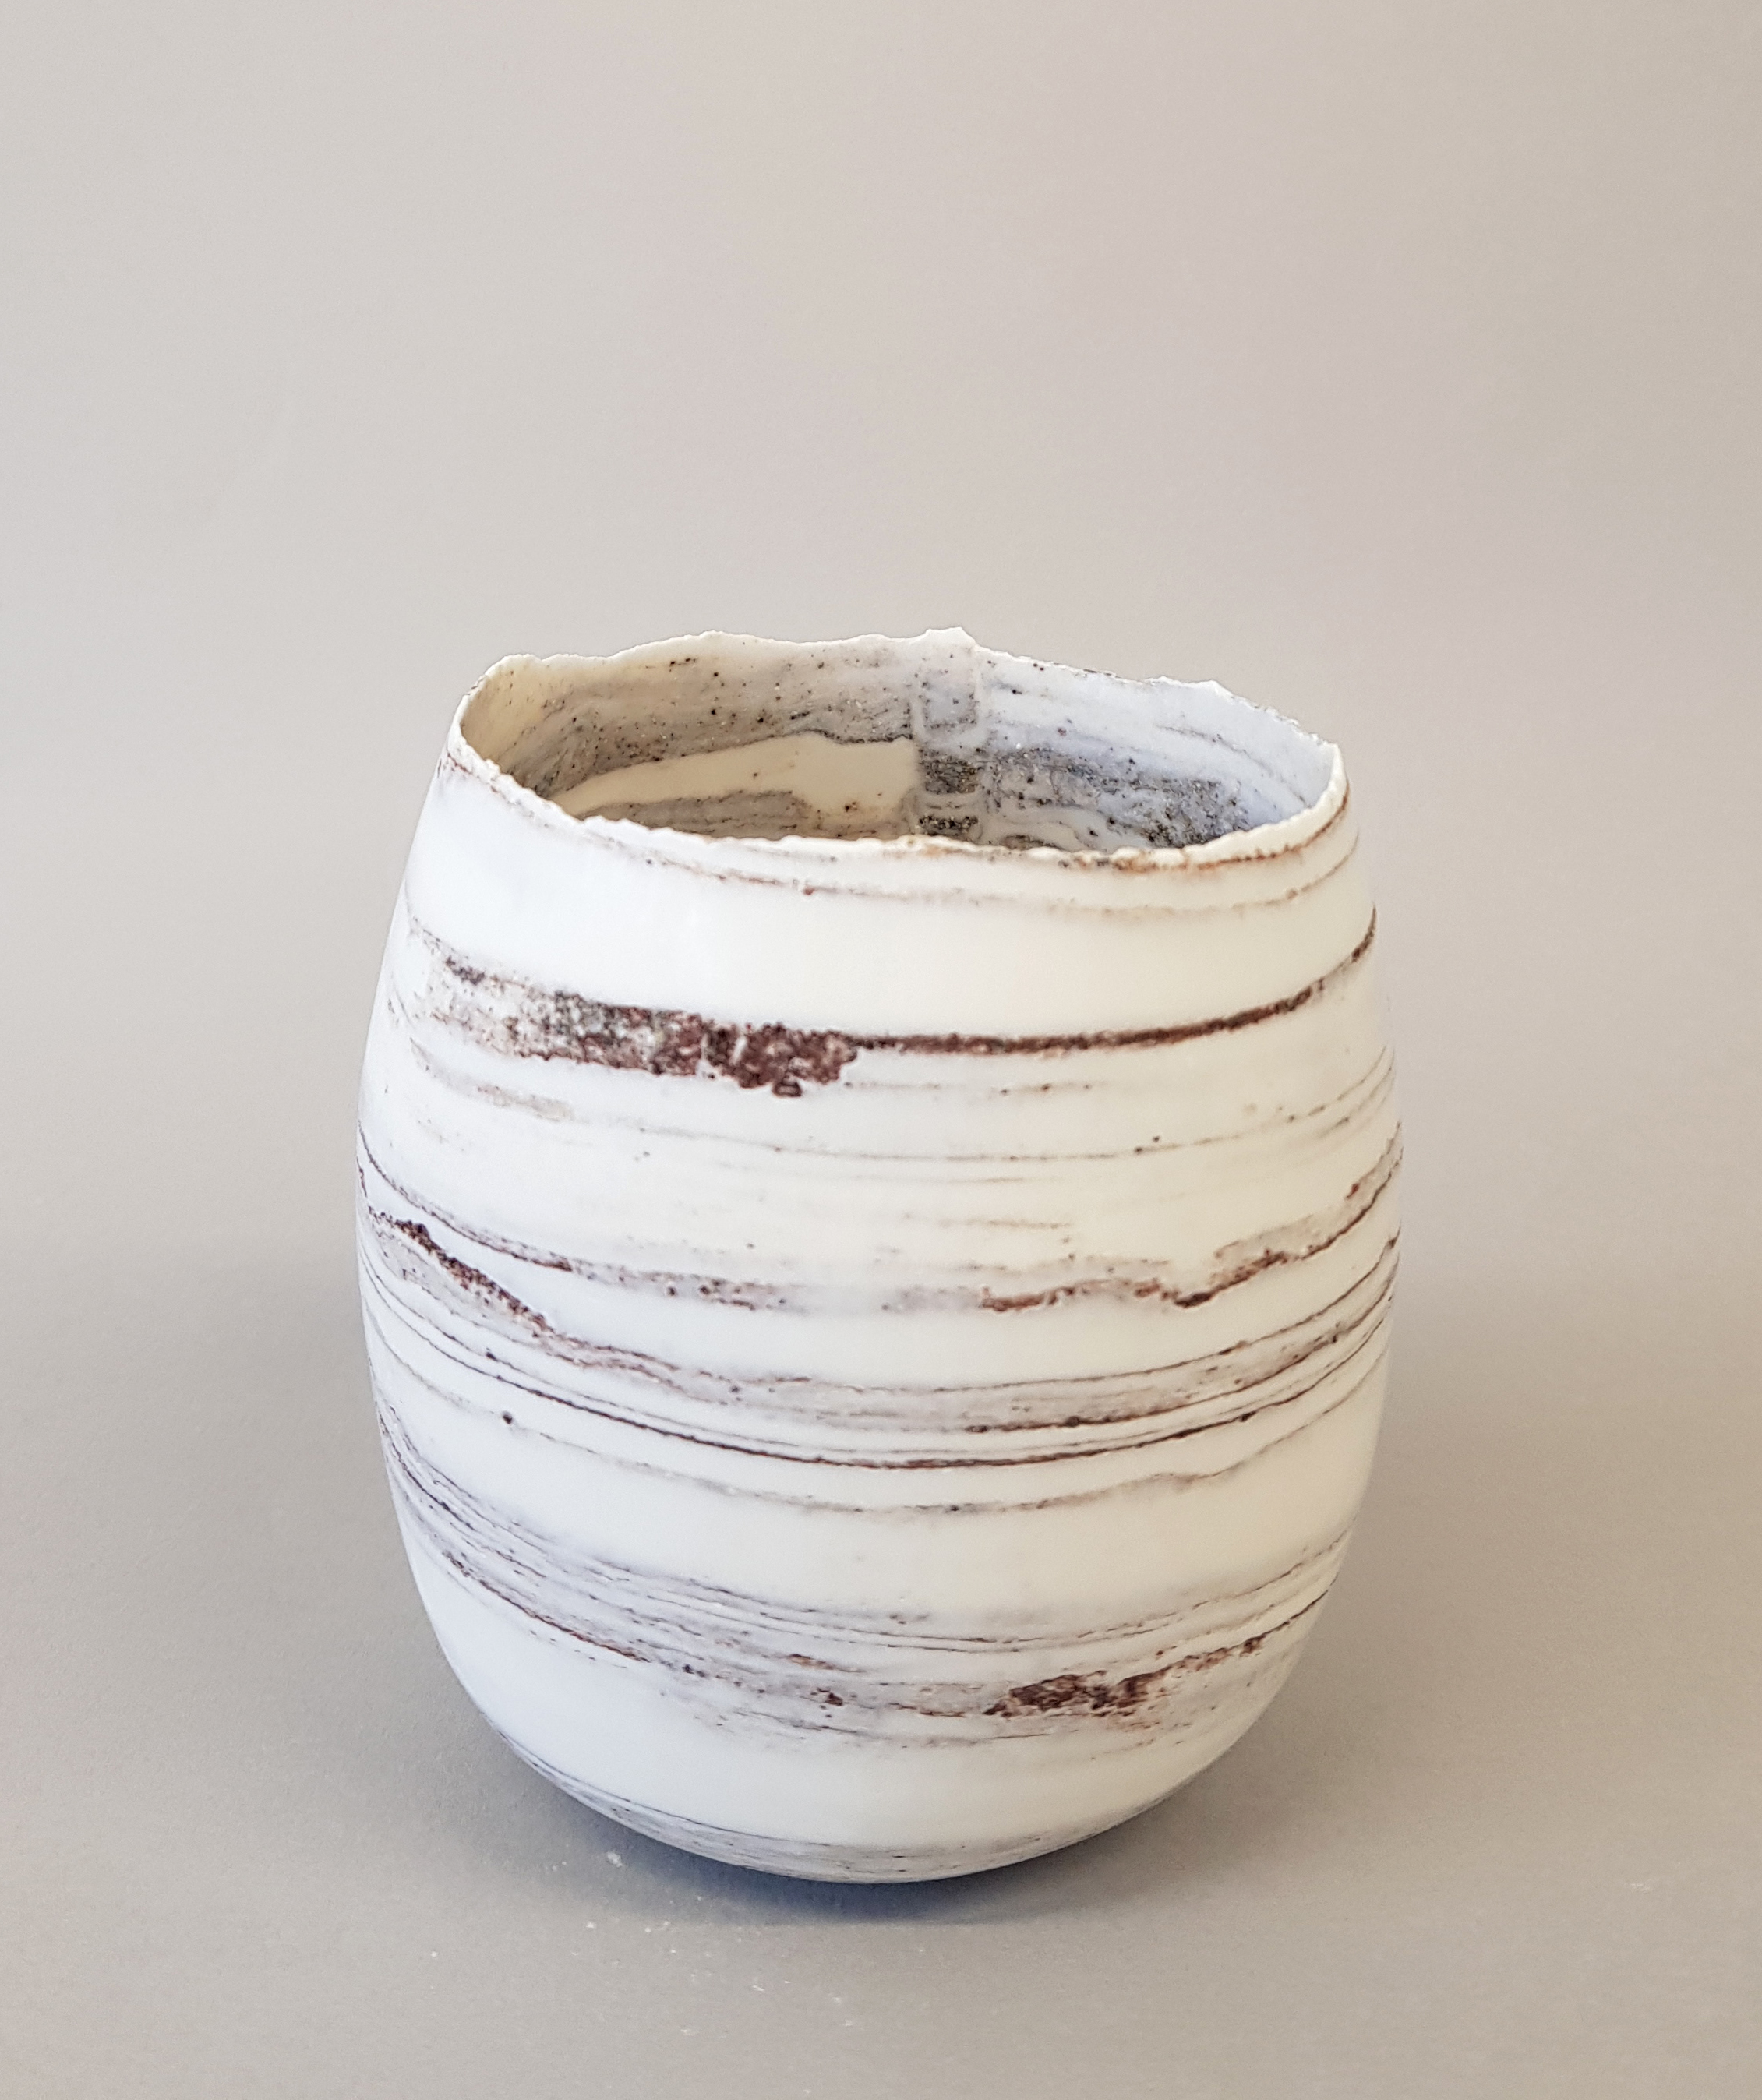 Fragile porcelain with clay from a meadow in oxford